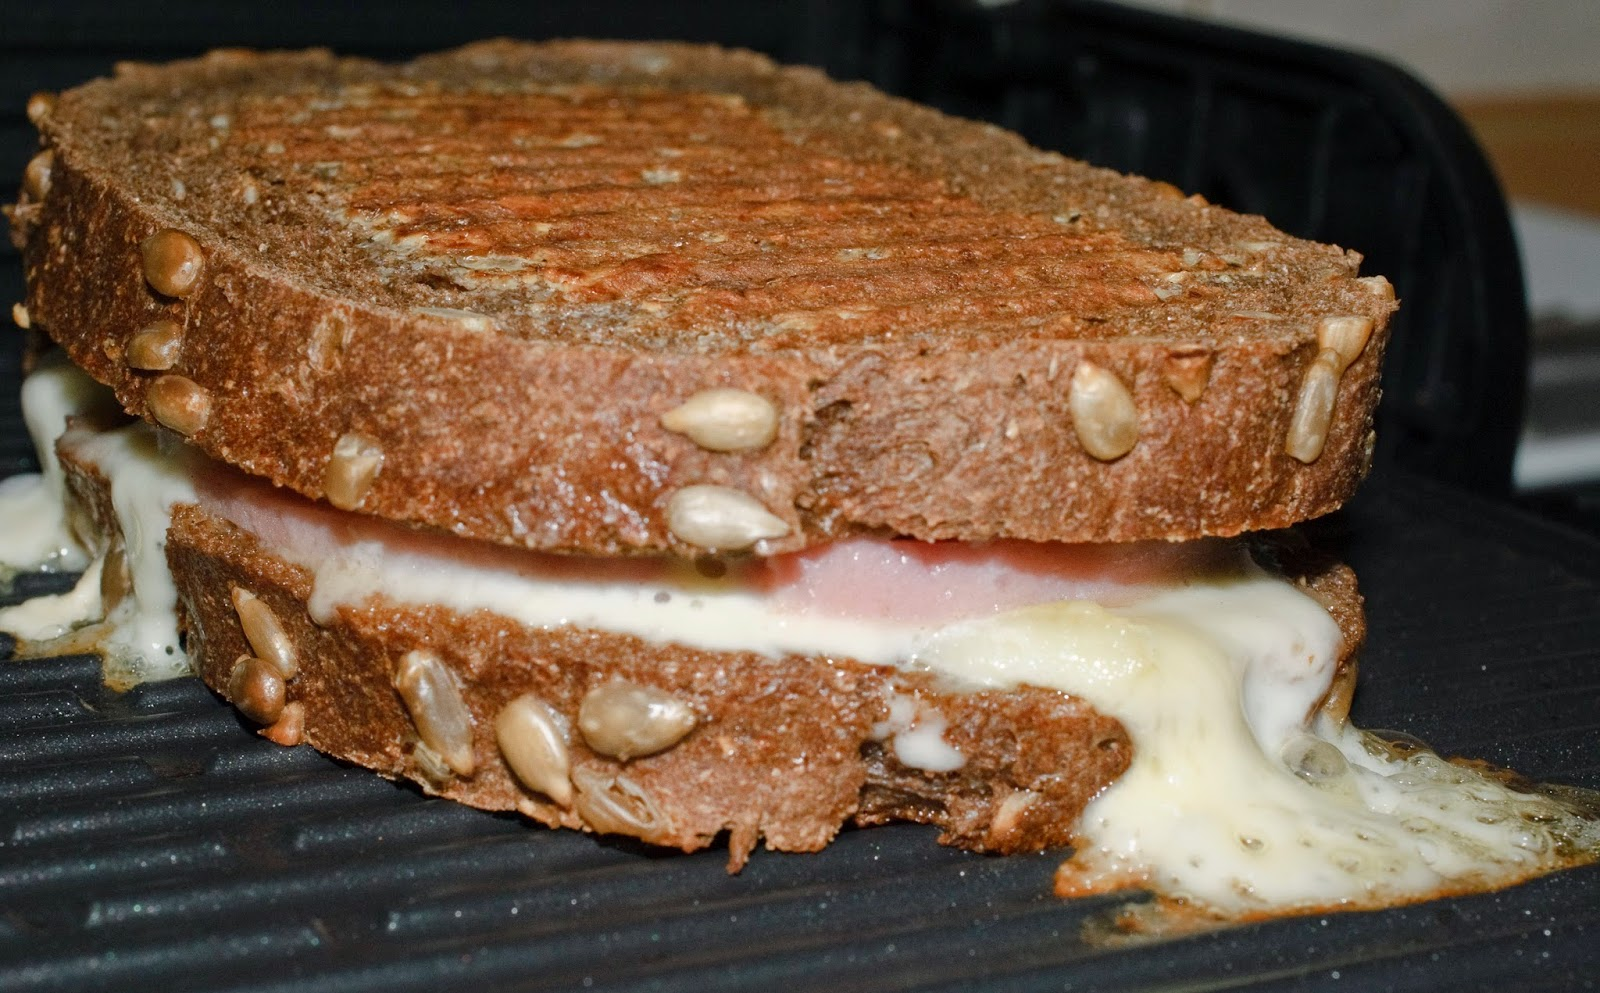 Sandwich de pavo y queso; turkey and cheese sandwich